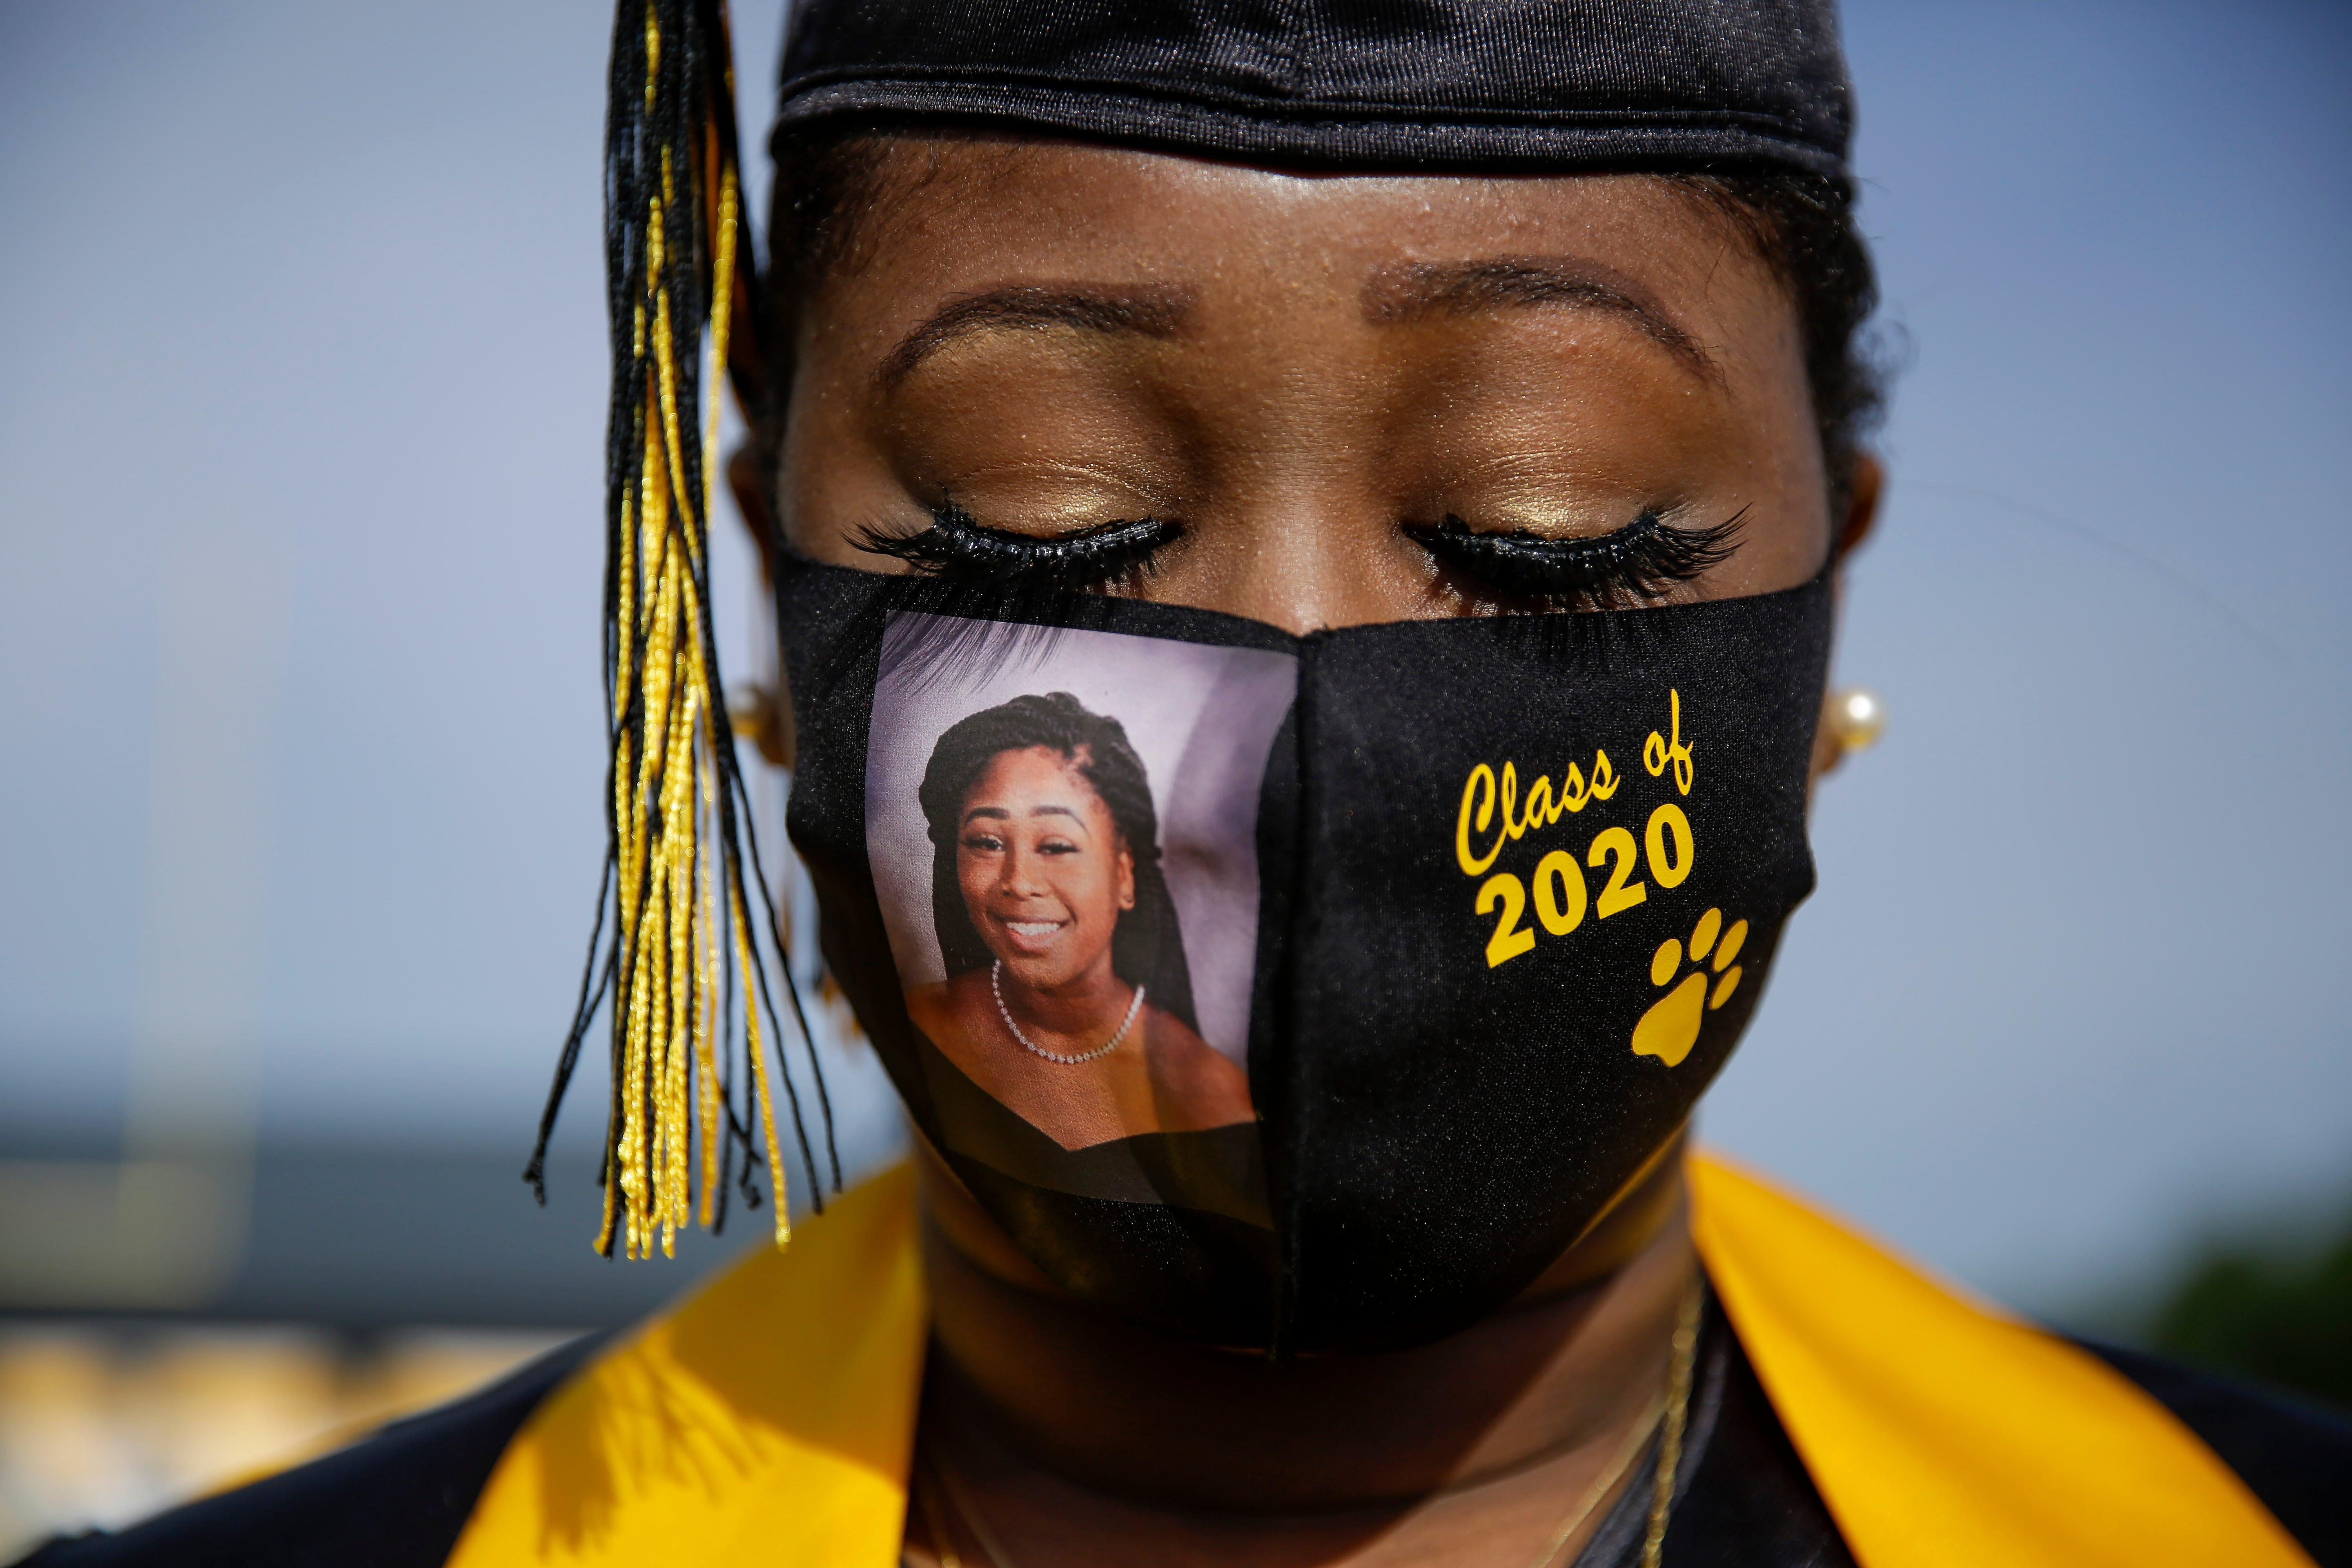 Senior Yasmine Protho, 18, wears a photo of herself on her mask while graduating with only 9 other classmates from Georgia's Chattahoochee County High School last May. A very small number of family members were allowed to attend.